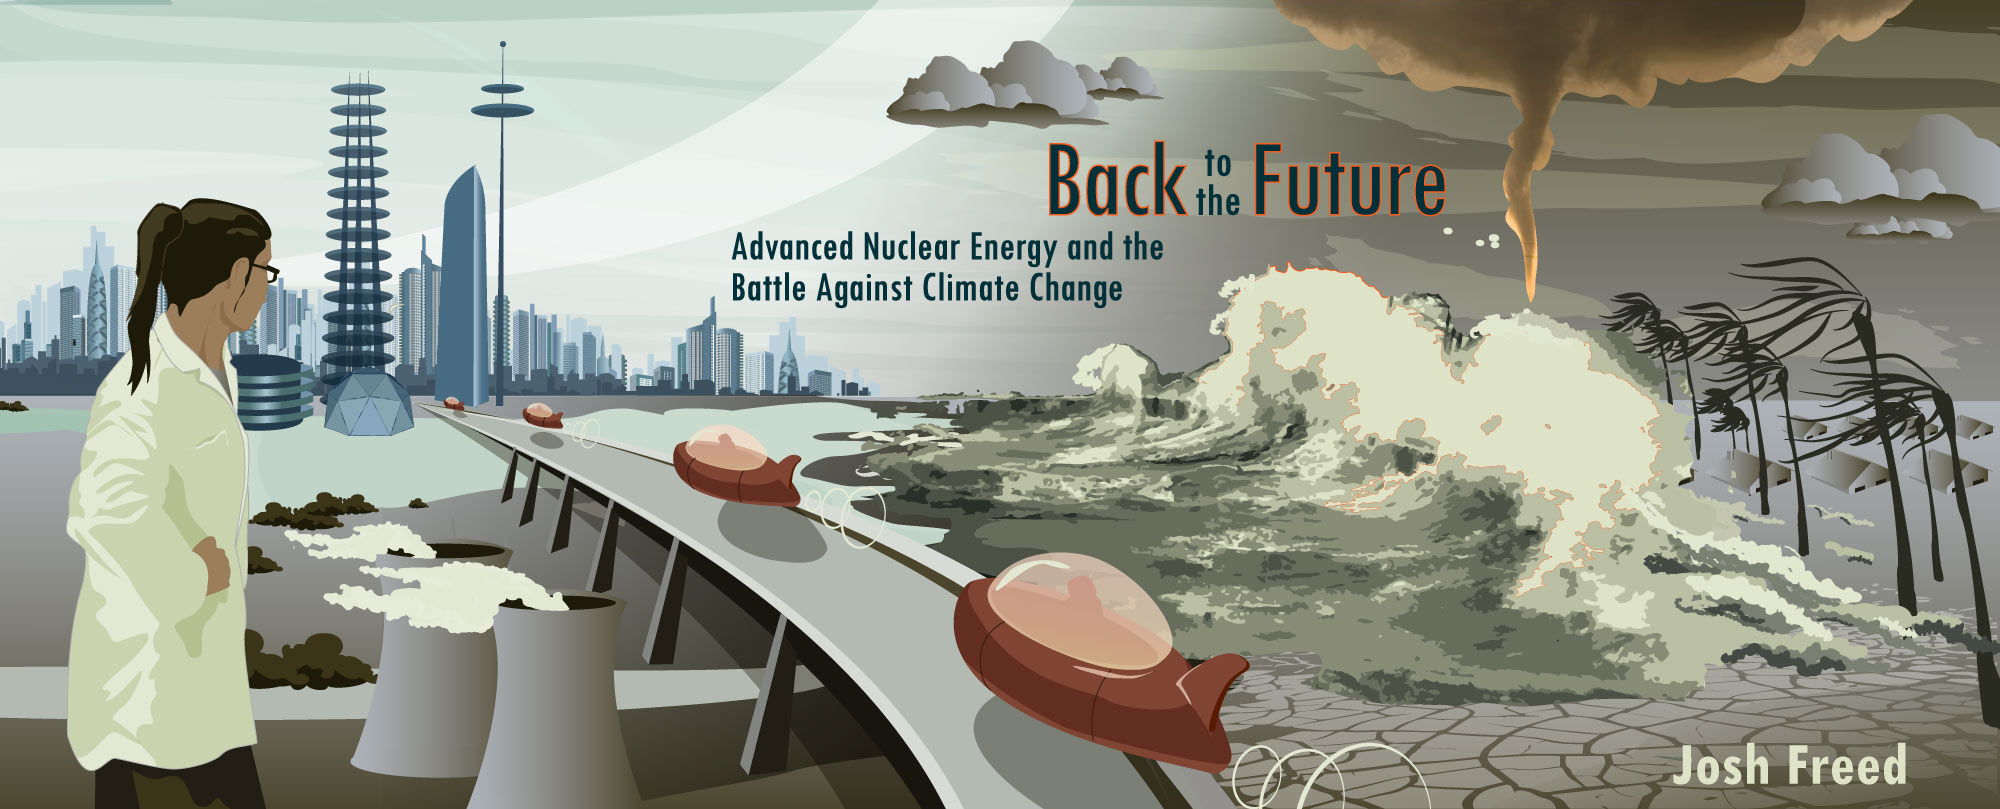 nuclear power essay introduction Nuclear power plants contain reactors that create controlled chain reaction fission, a process that continuously splits the nuclei of uranium atoms.